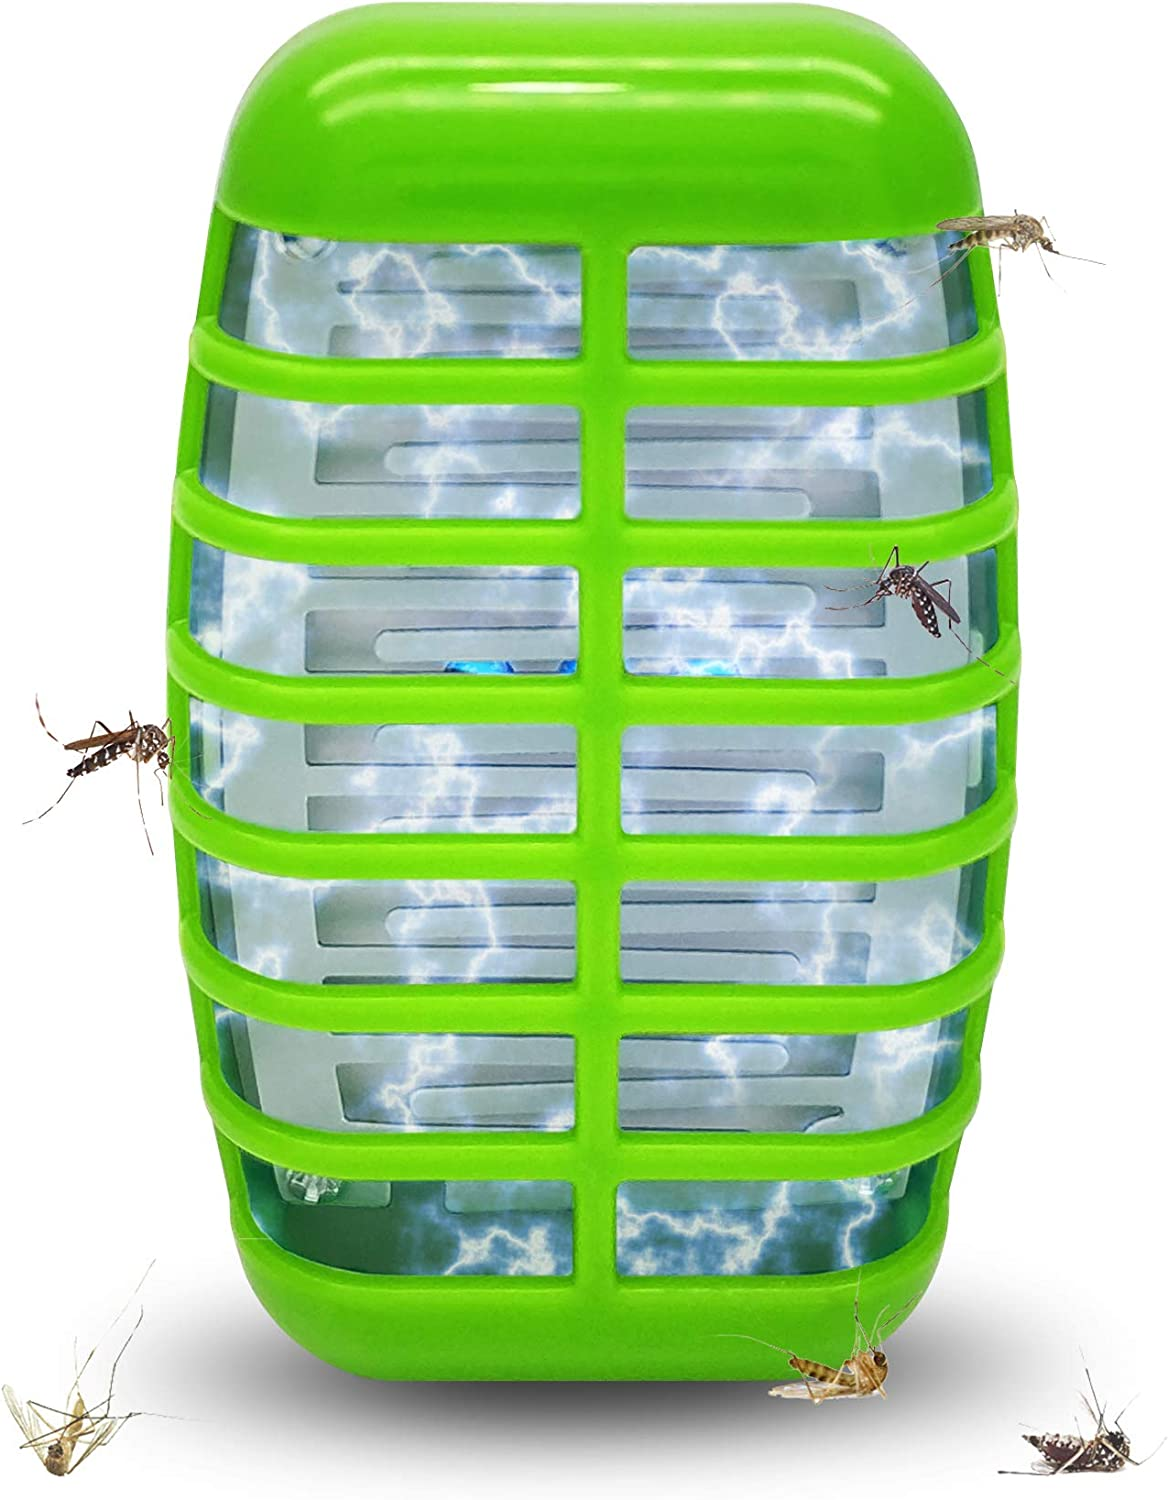 Bug Zapper Mosquito Killer Lamp-2020 New Electronic Insect Trap Night Light Pest Control Repellent, Eliminates Most Flying Pests for Home Use Indoor